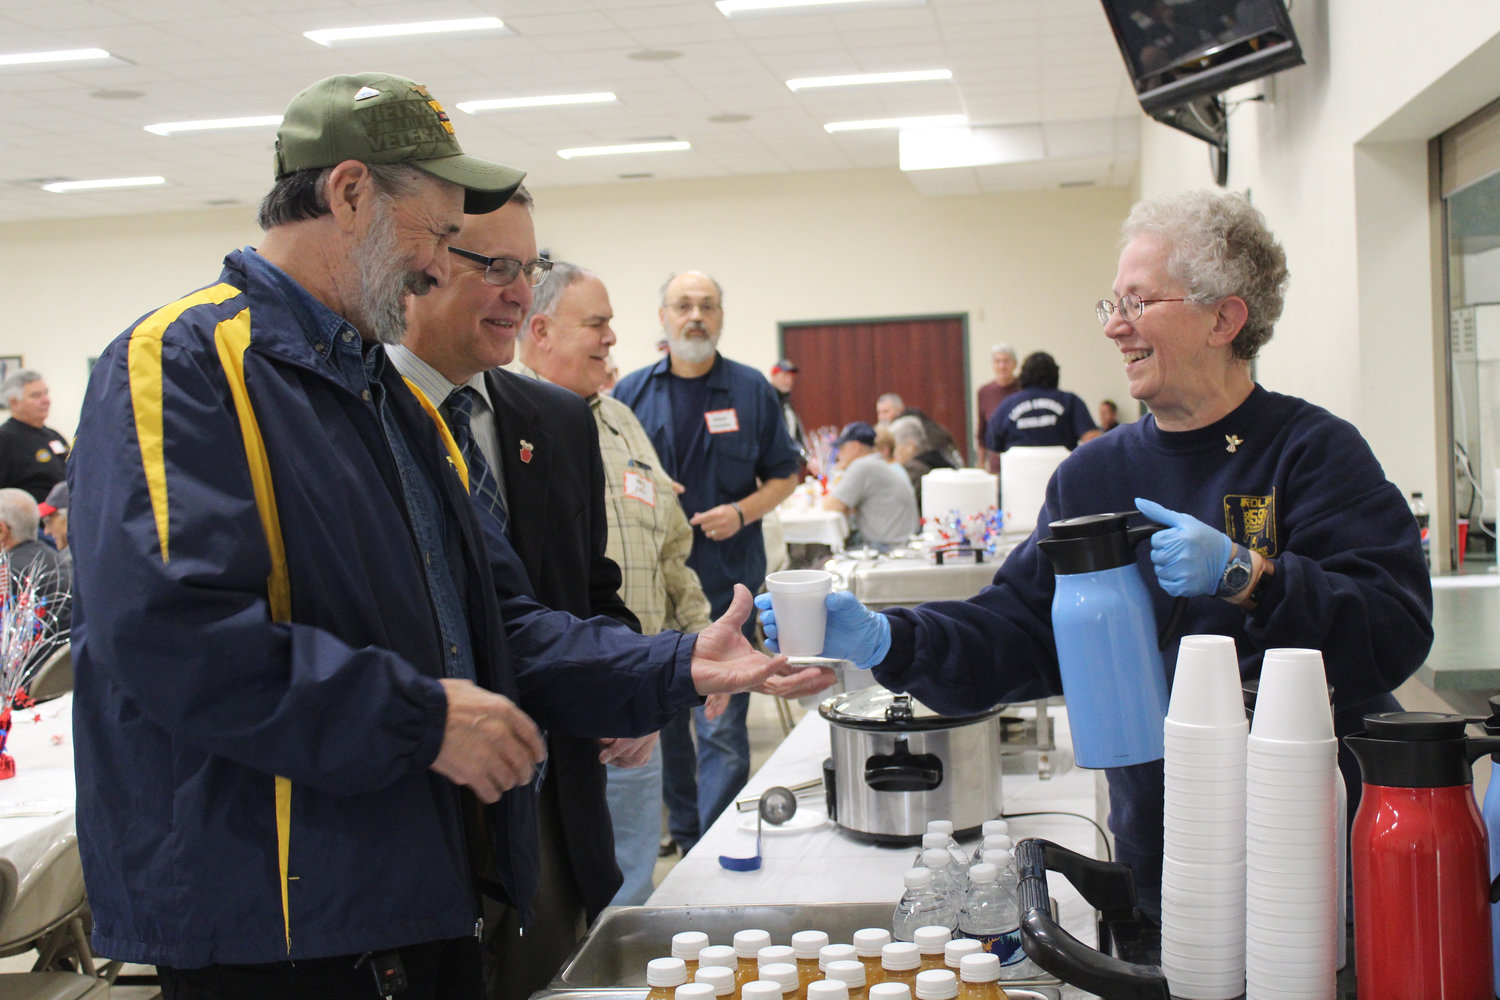 Betsy Dressler hands Navy veteran Mike Donnelly a cup of coffee during Rep. Tom Mehaffie's Veterans Breakfast at the Lower Swatara Fire Hall Nov. 8.